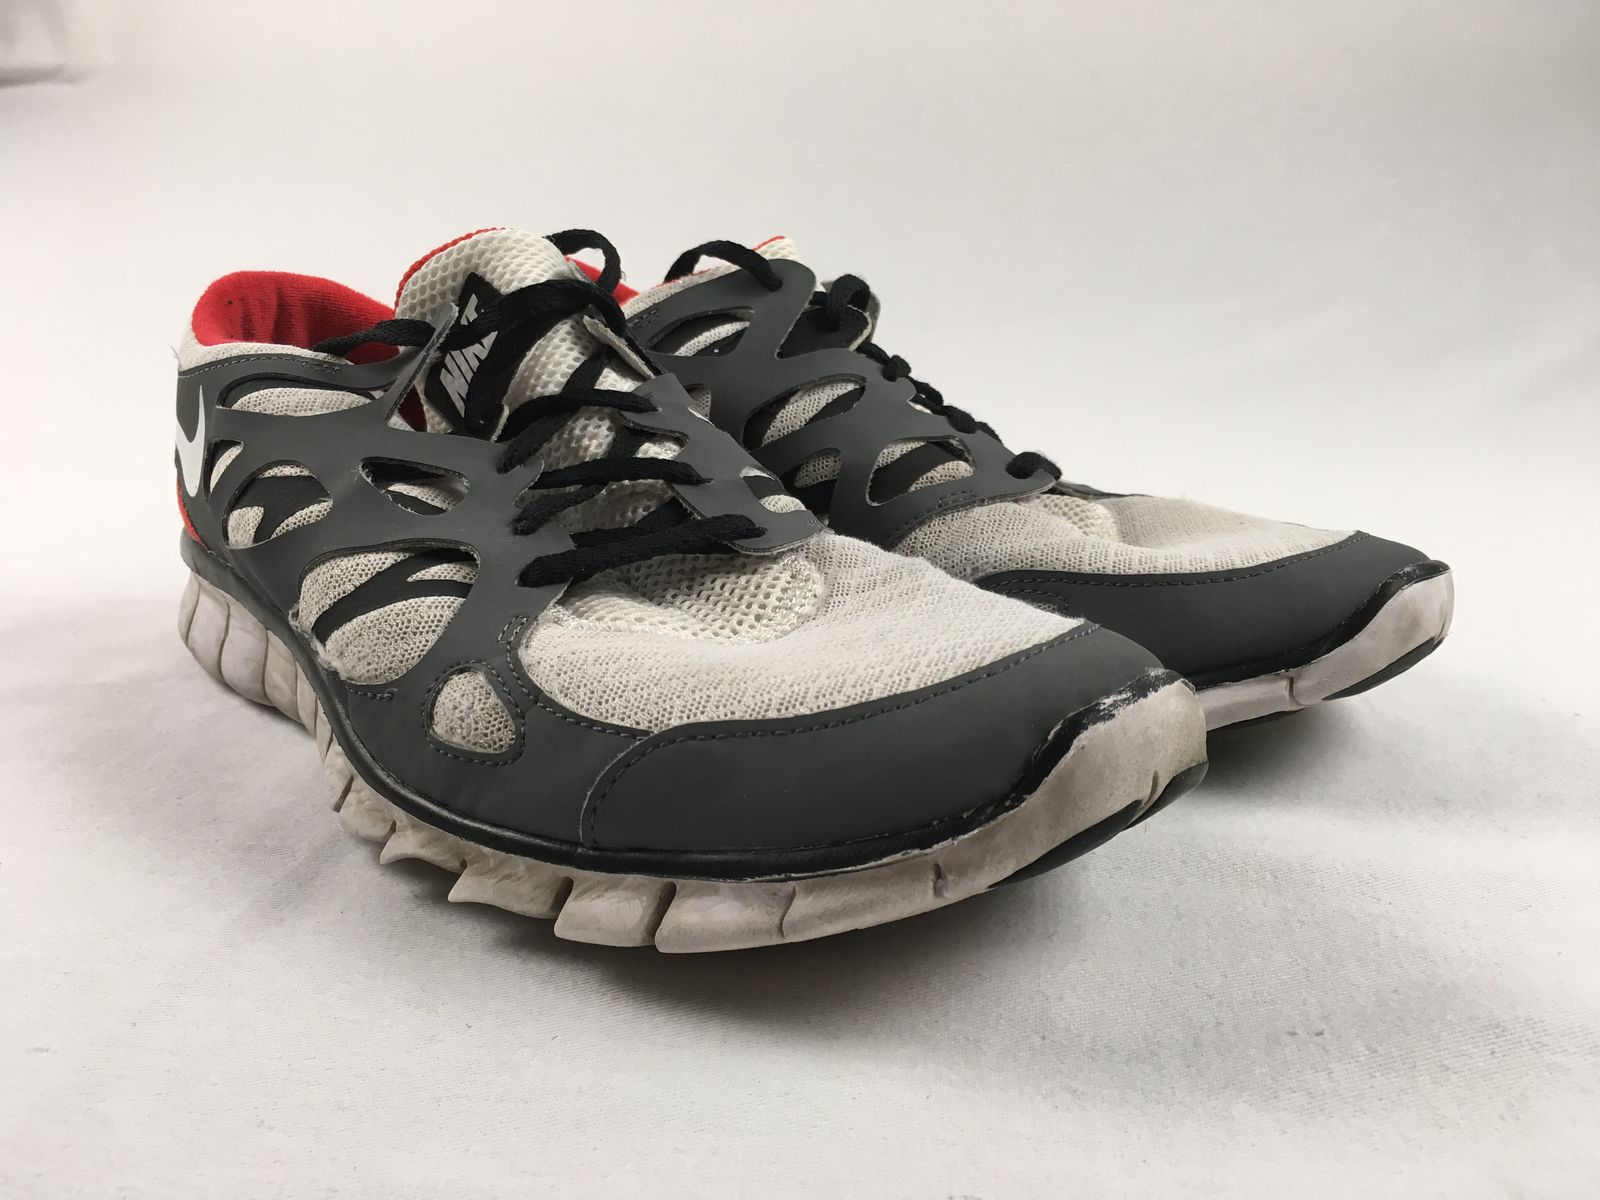 f0972b771d76 Details about Nike Free Run 2 - Gray Red Running